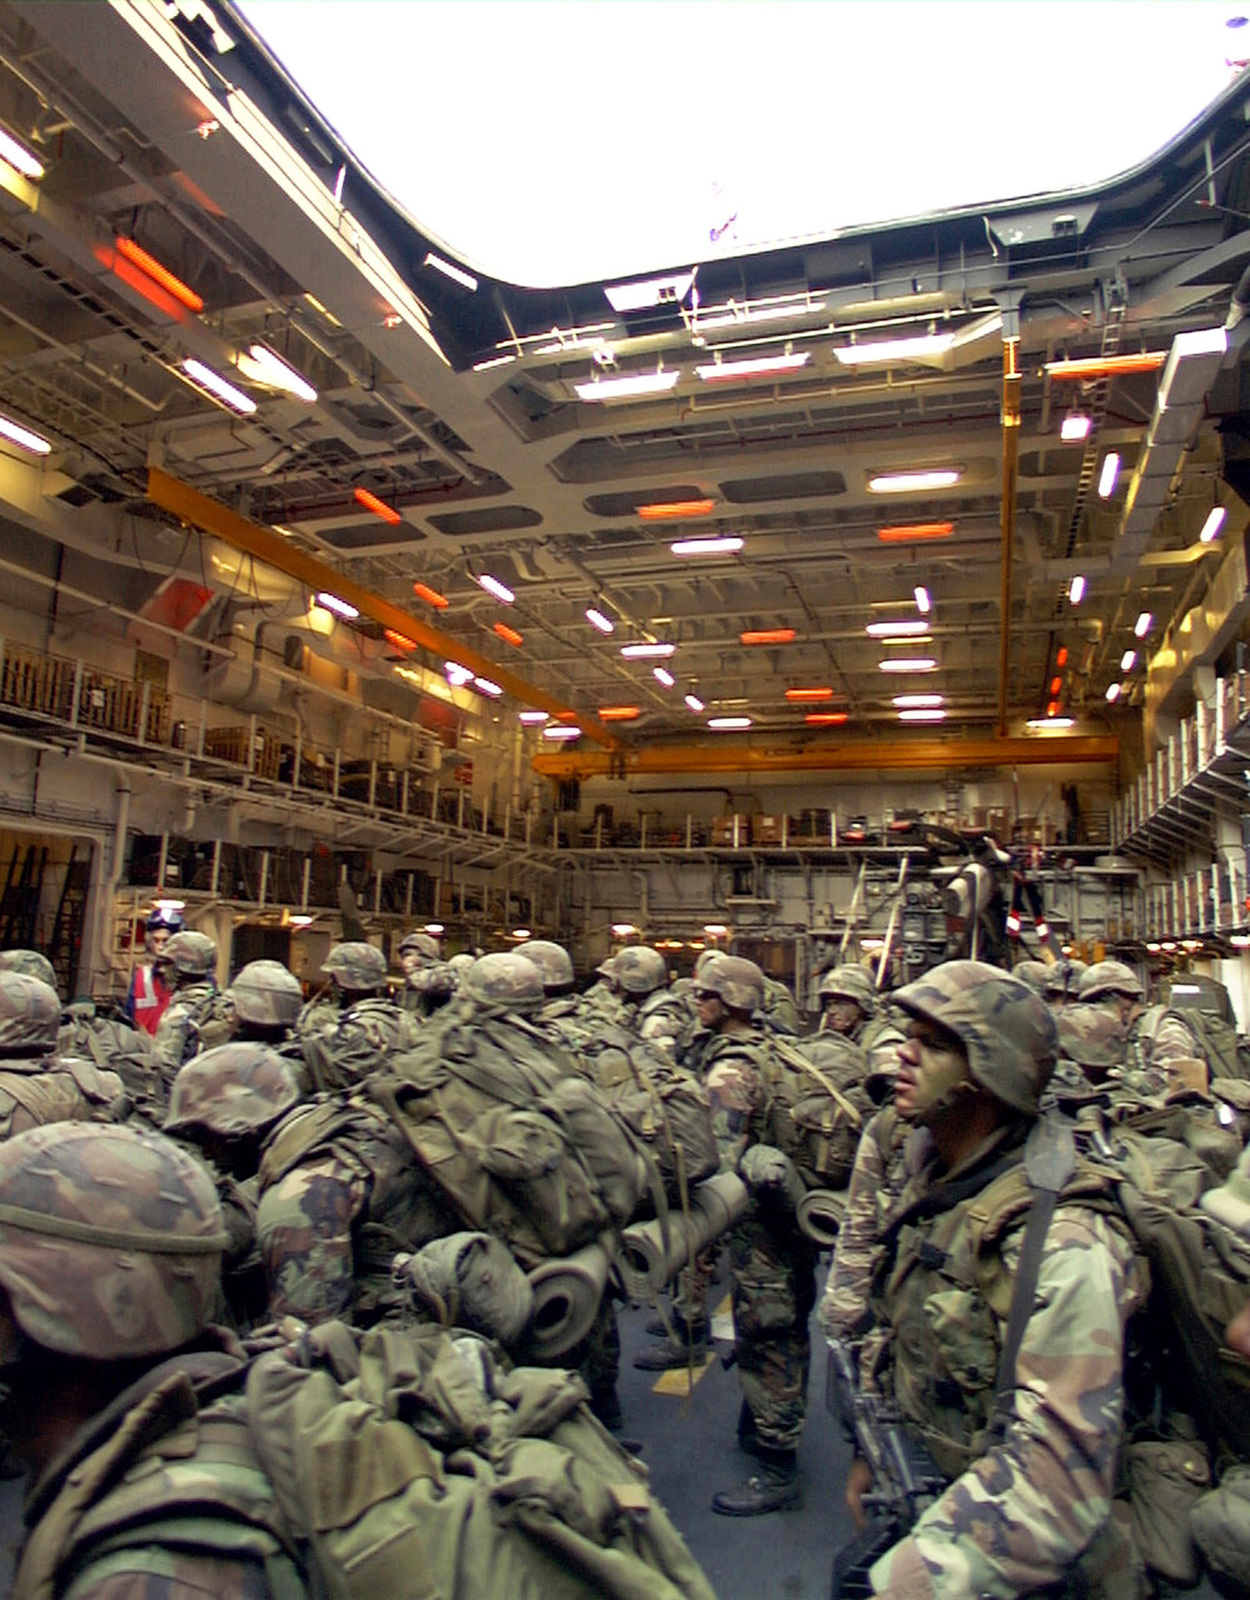 United Staes Marines from Lima Company, Battalion Landing Team 3/8, ride an elevator into the vast hangar bay of the British amphibious assault ship HMS OCEAN (L12), during NORTHERN APPROACH, a NATO exercise.Marines from the 26th Marine Expeditionary Unit (Special Operations Capable) (MEU (SOC)) are here in Turkey to participate in the NATO exercise with amphibious forces from the United Kingdom and host nation Turkey